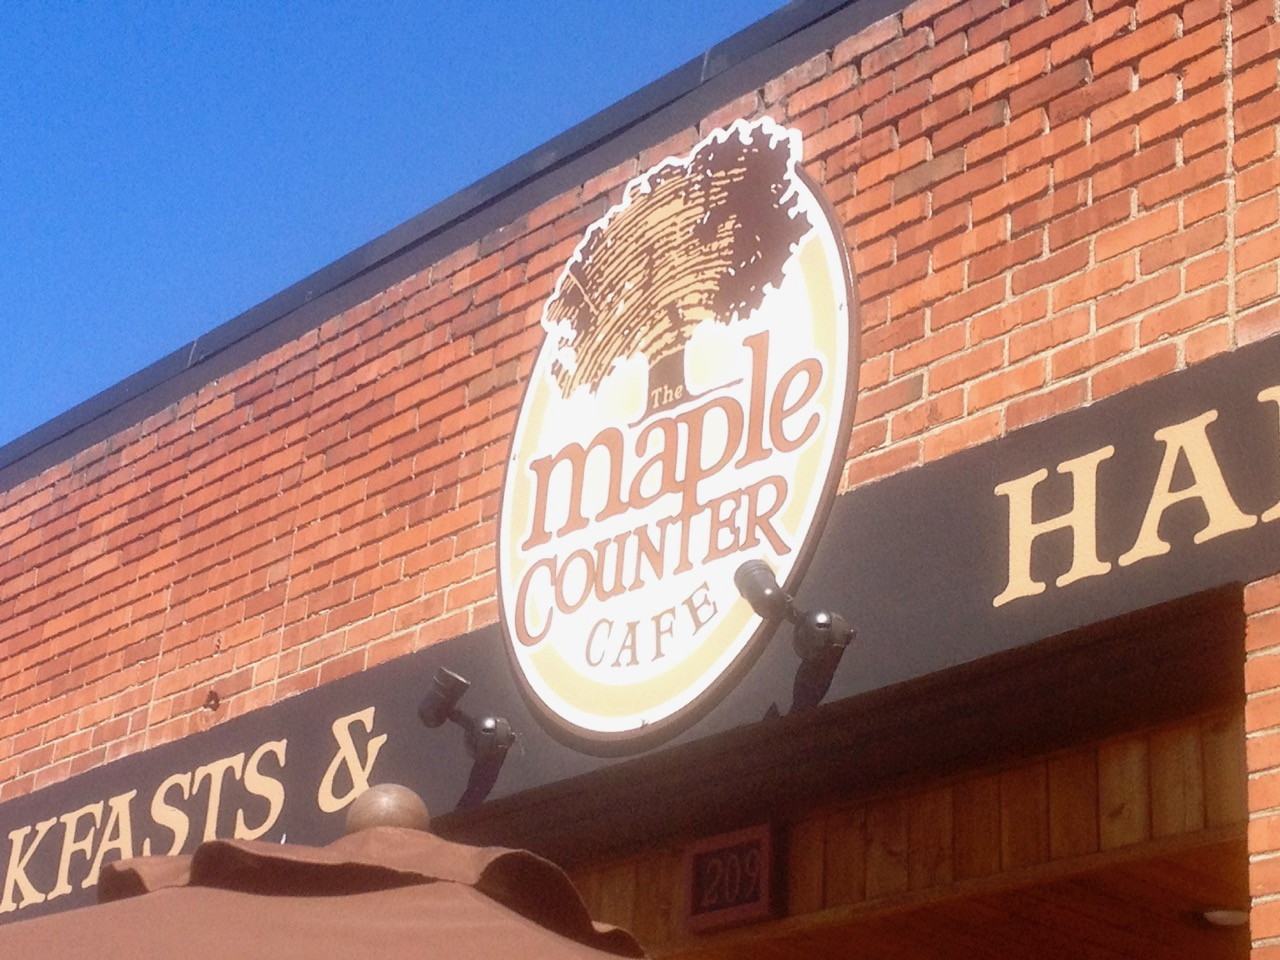 Breakfast at Maple Counter Cafe – July 1 2013